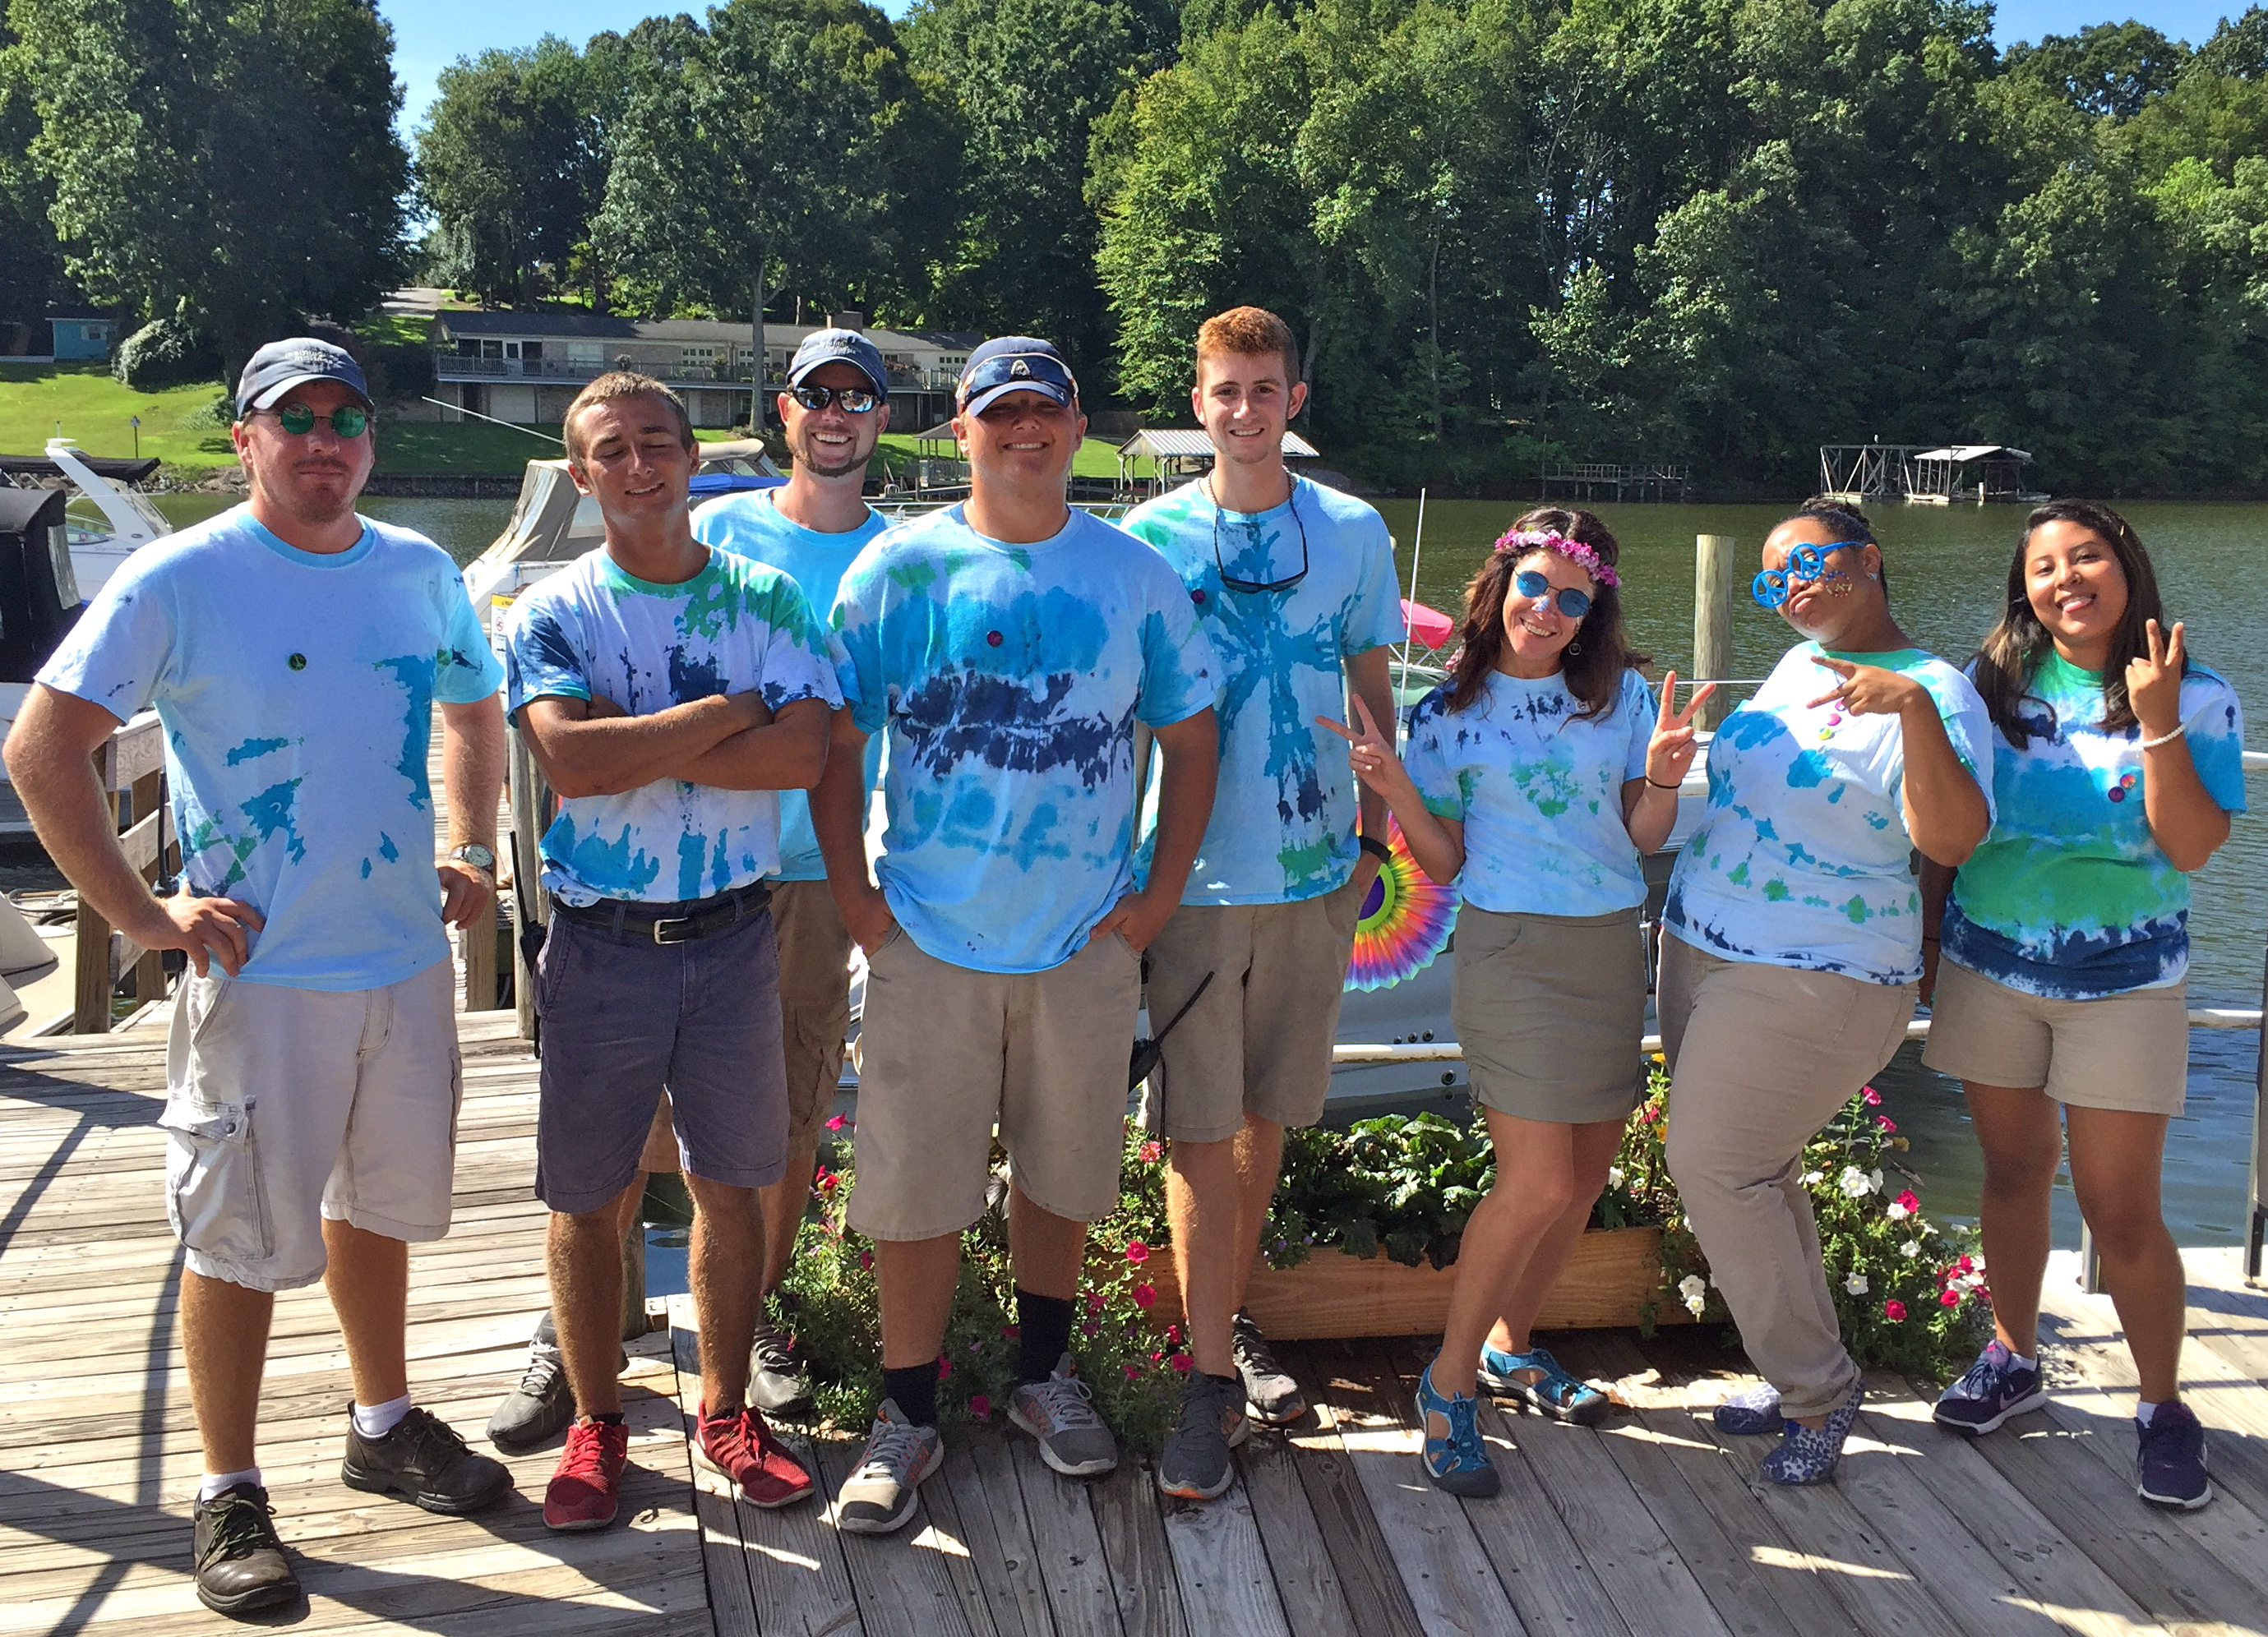 Morningstar Marinas Skippers Landing staff members in tie-dye shirts for a 70's themed party